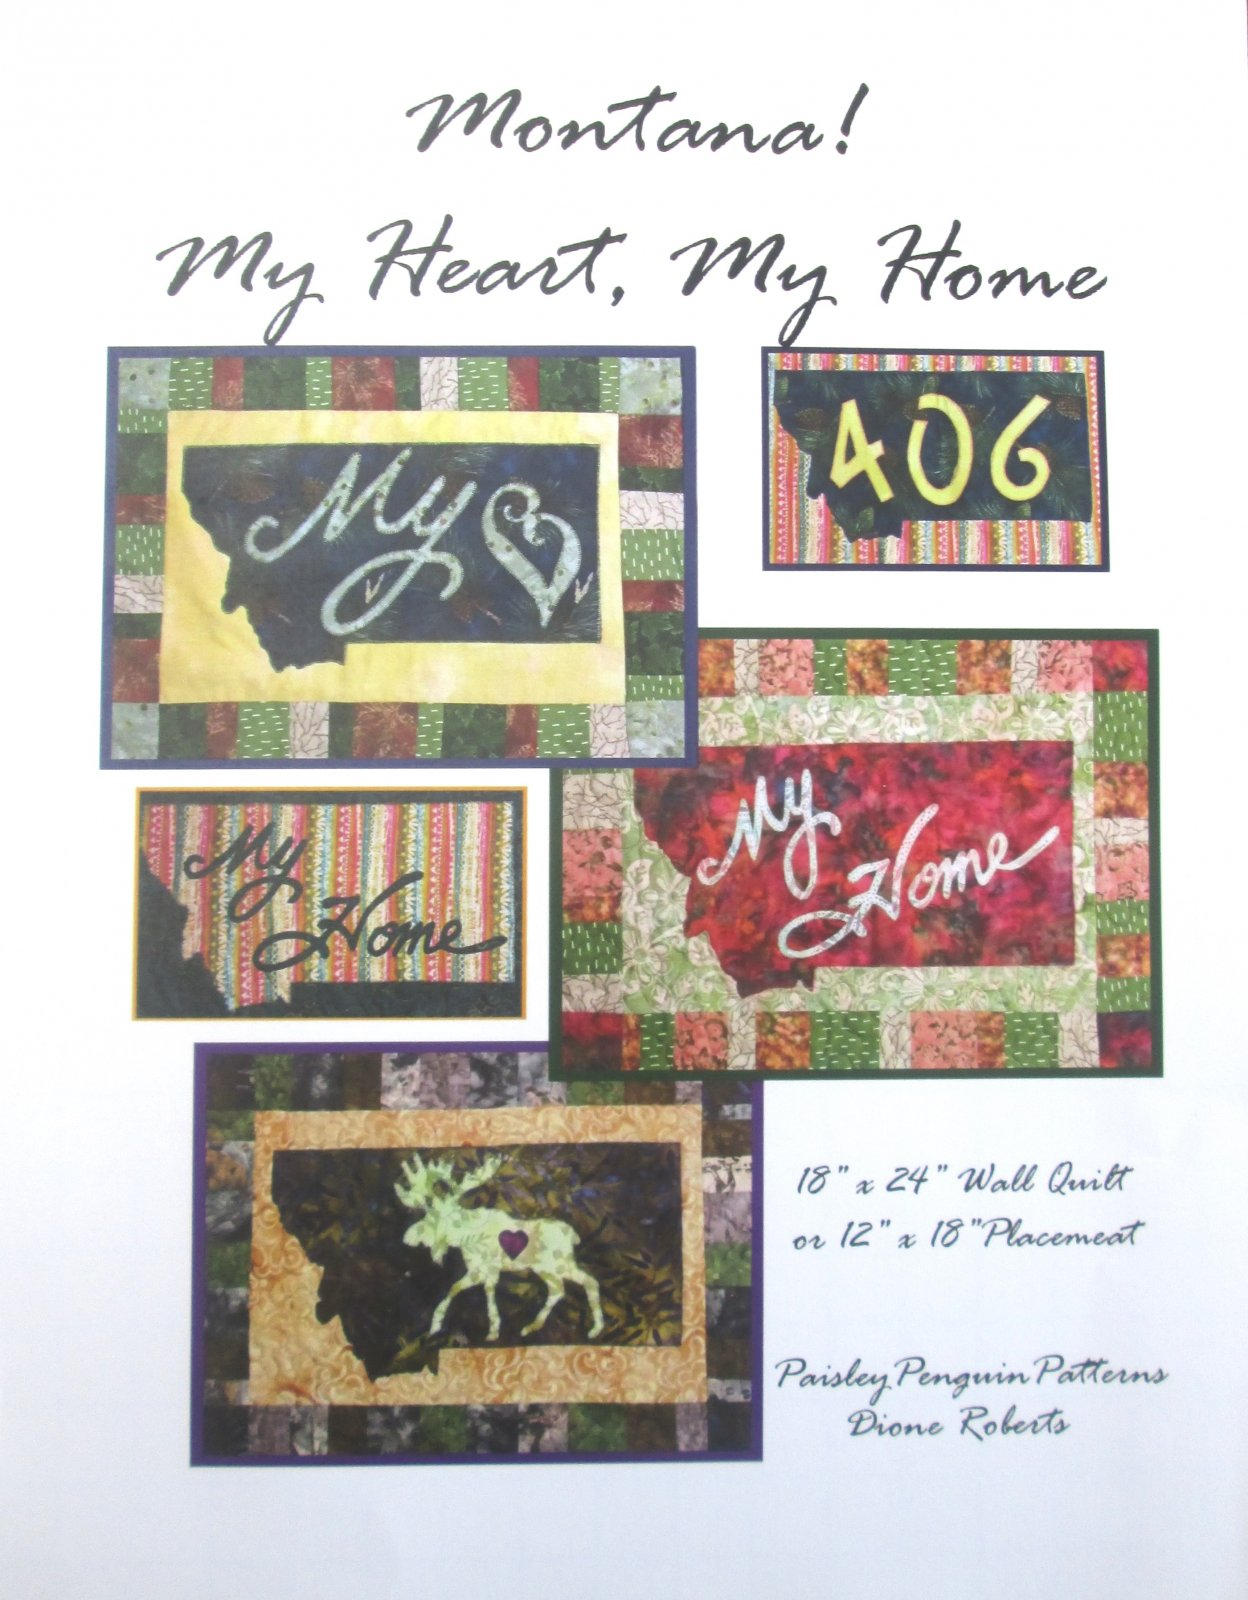 Paisley Penquin Designs Montana! My Heart, My Home Pattern  18 x 24 Wall Quilt or 12 x 18 placemat